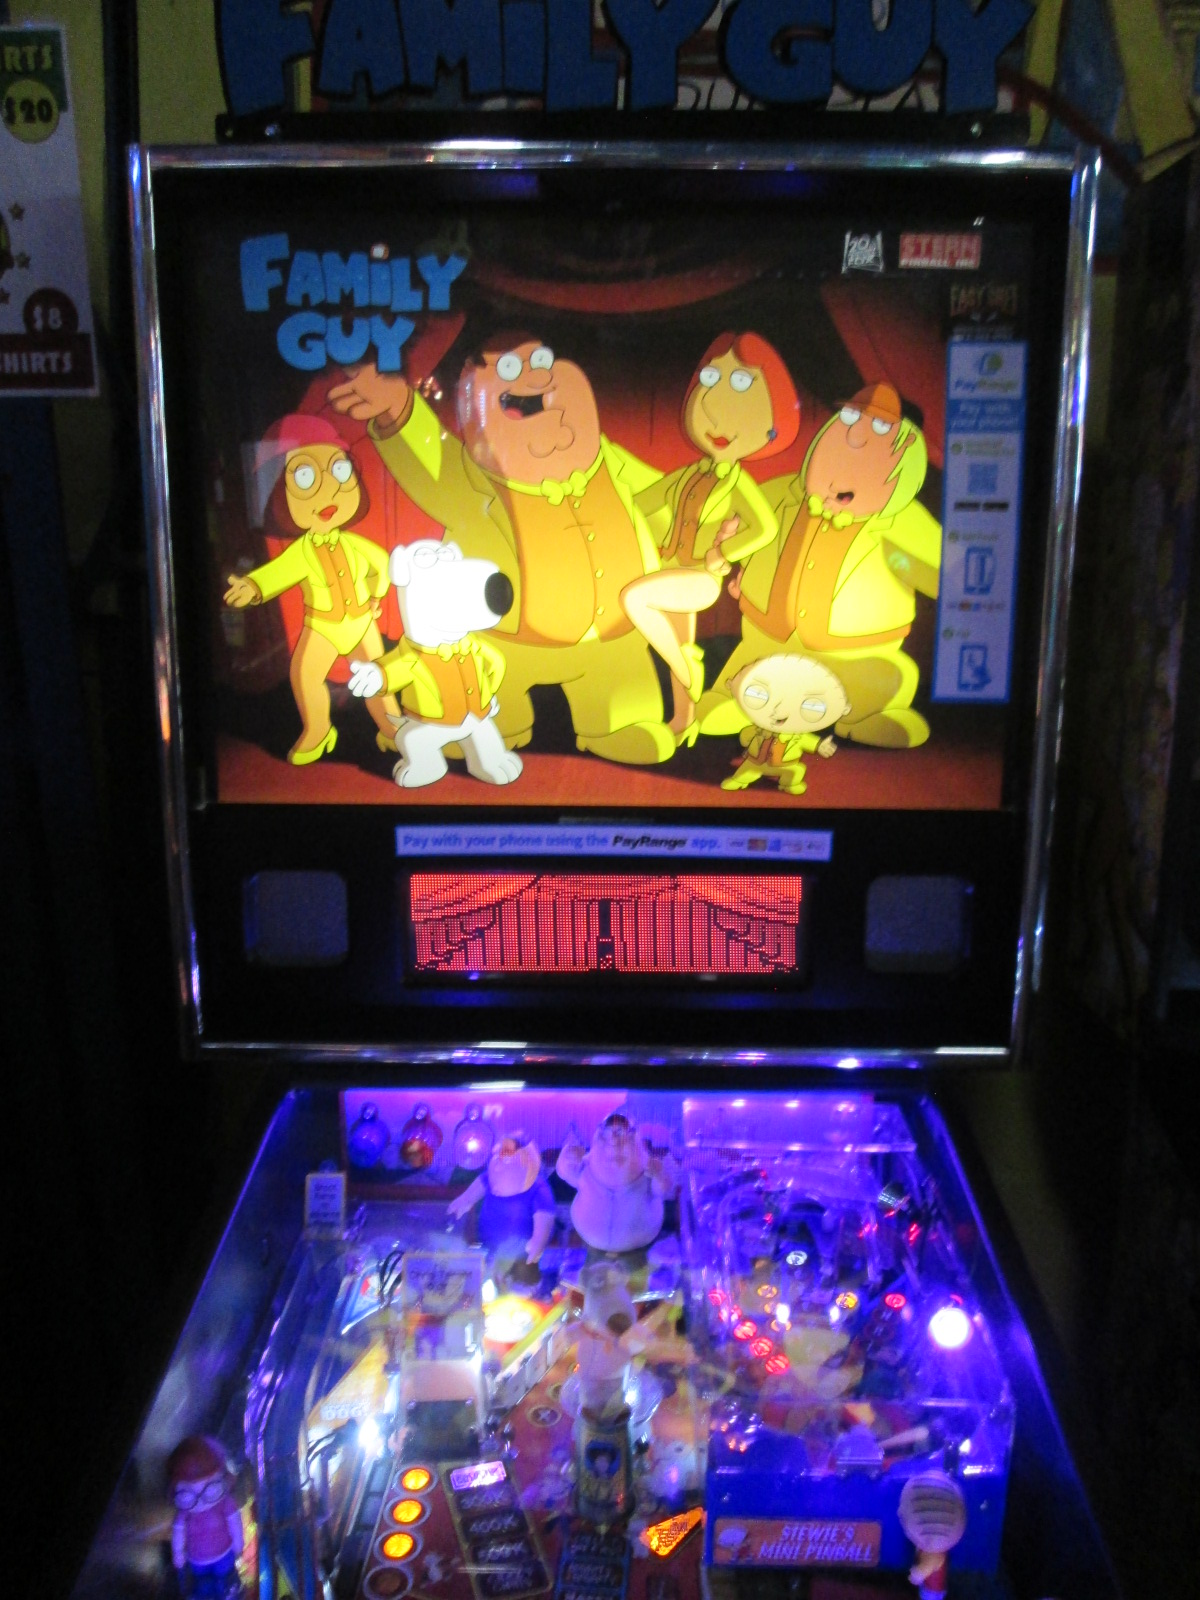 ed1475: Family Guy (Pinball: 3 Balls) 10,708,320 points on 2016-08-25 19:21:50